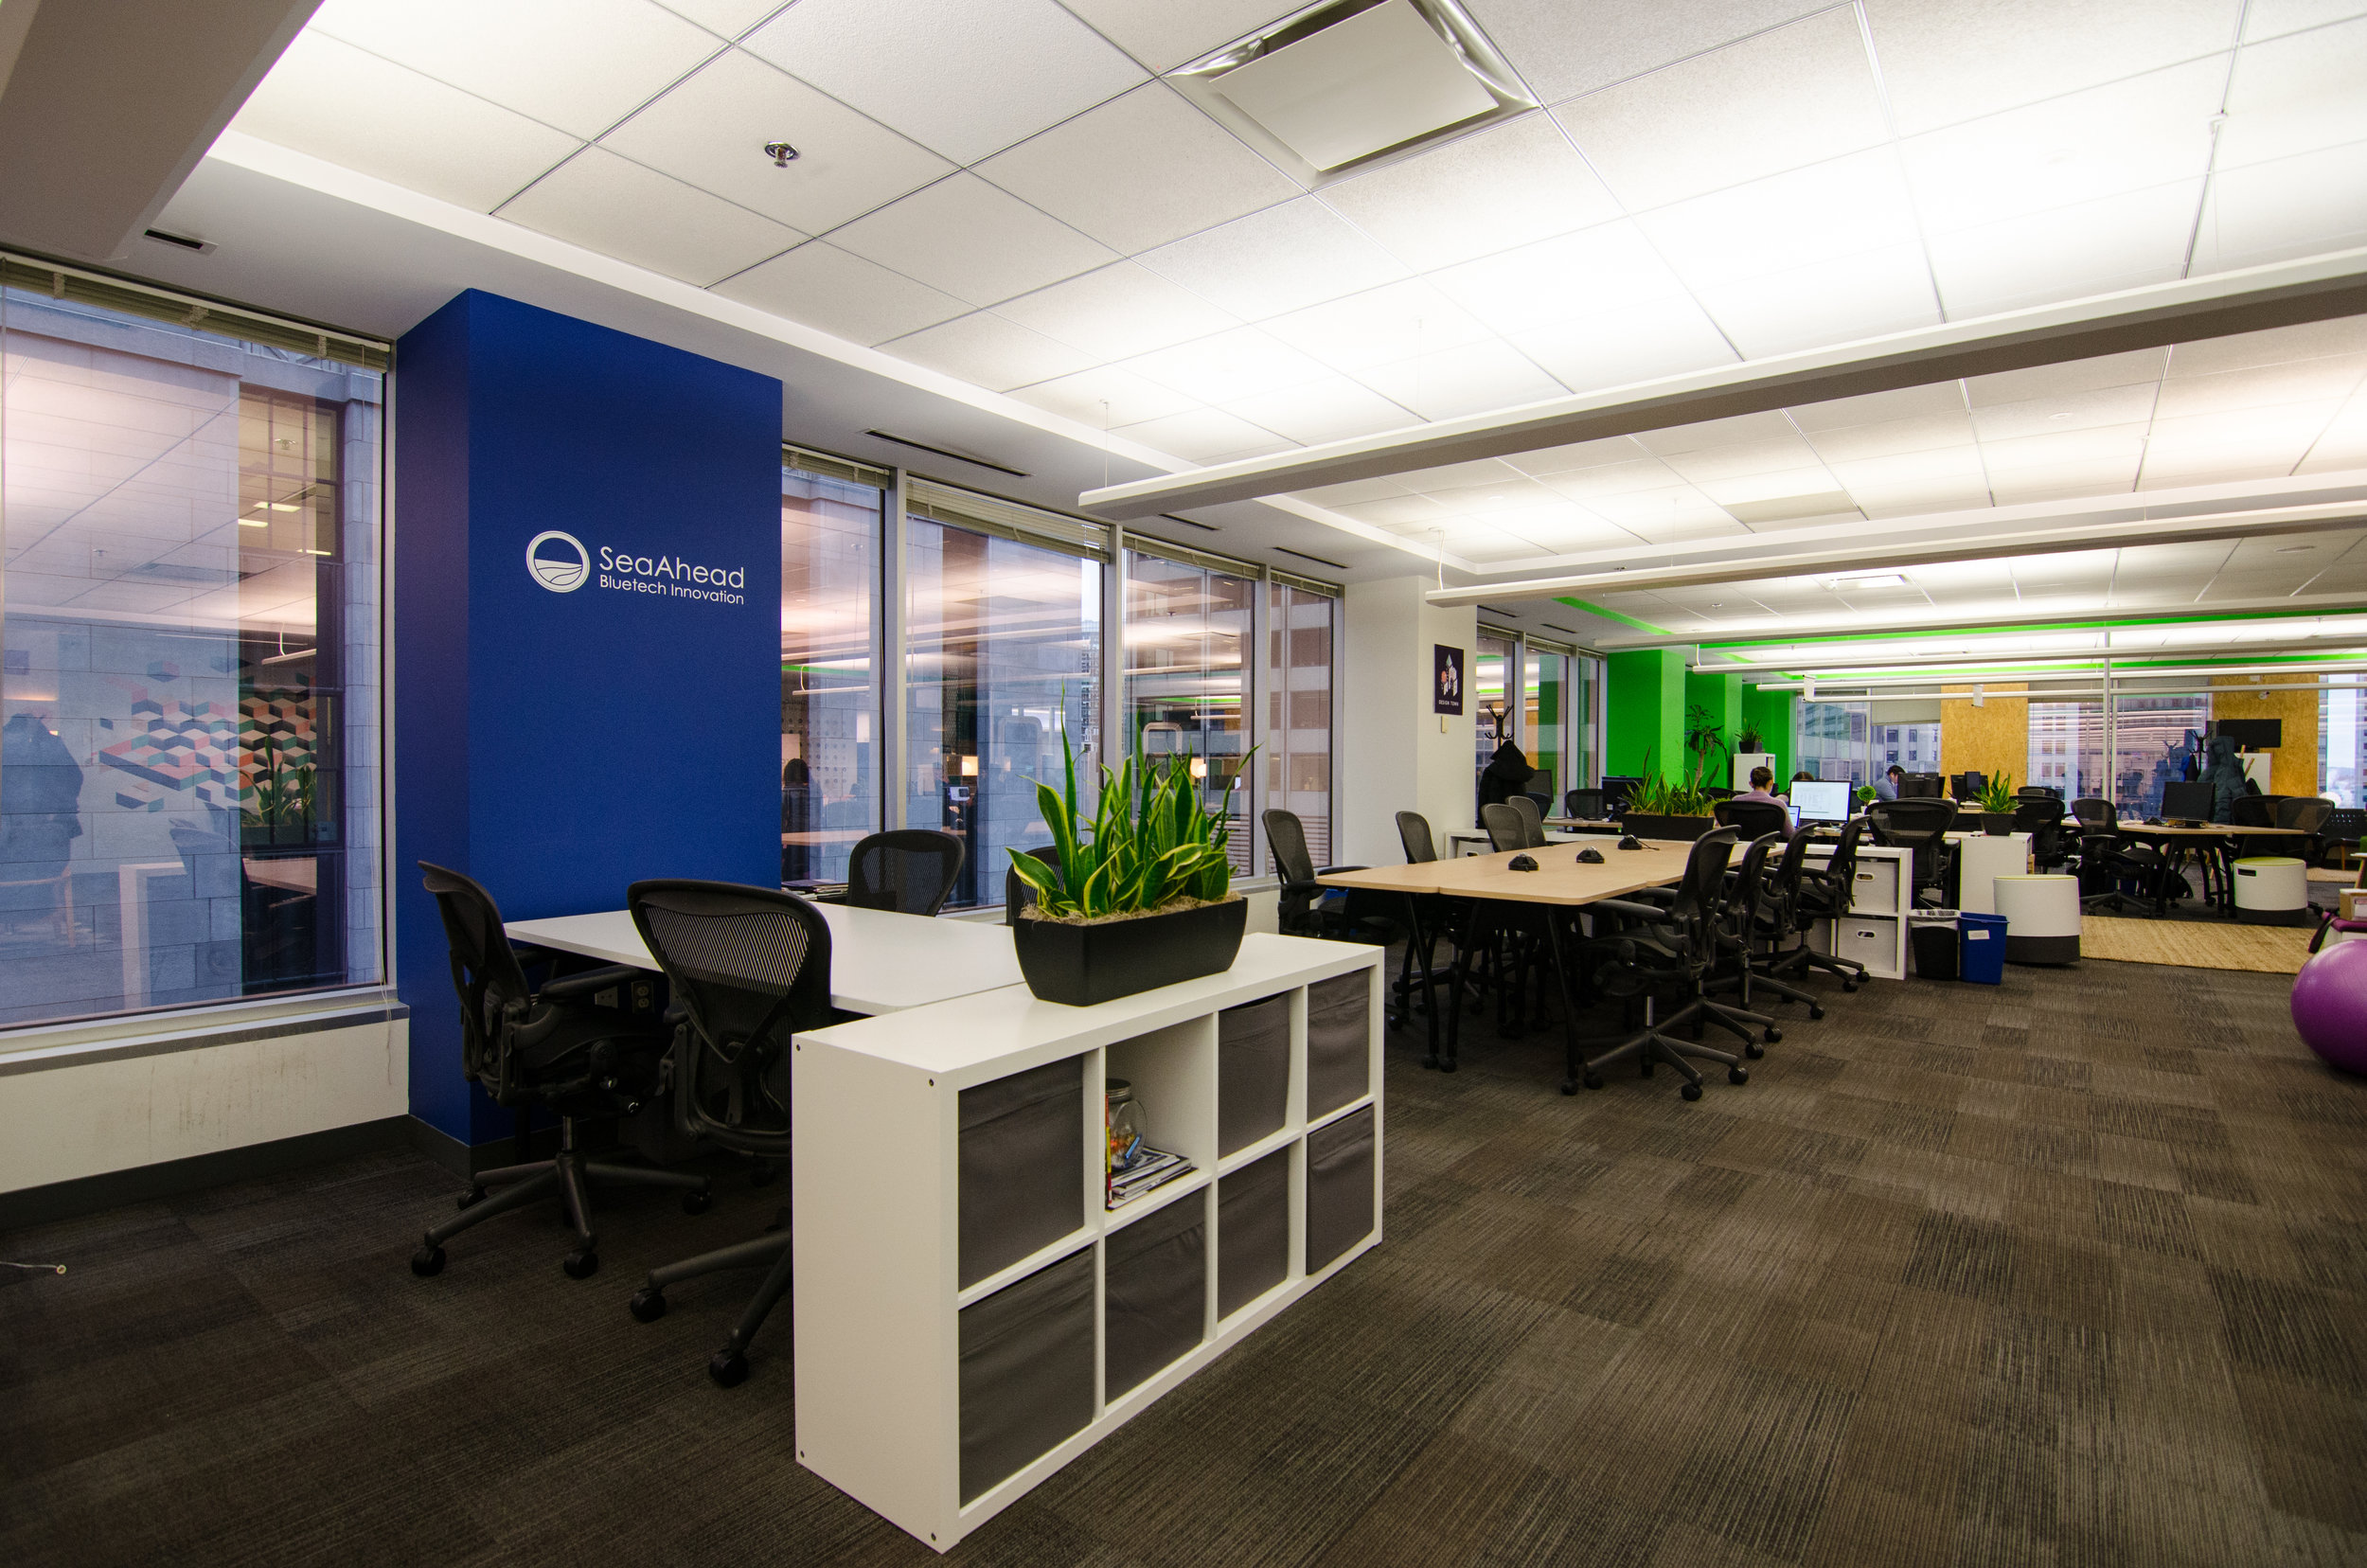 The SeaAhead coworking space at CIC Boston provides ocean innovators with shared workspace and an ecosystem of mentors, service providers, and investors. Photo courtesy of SeaAhead.